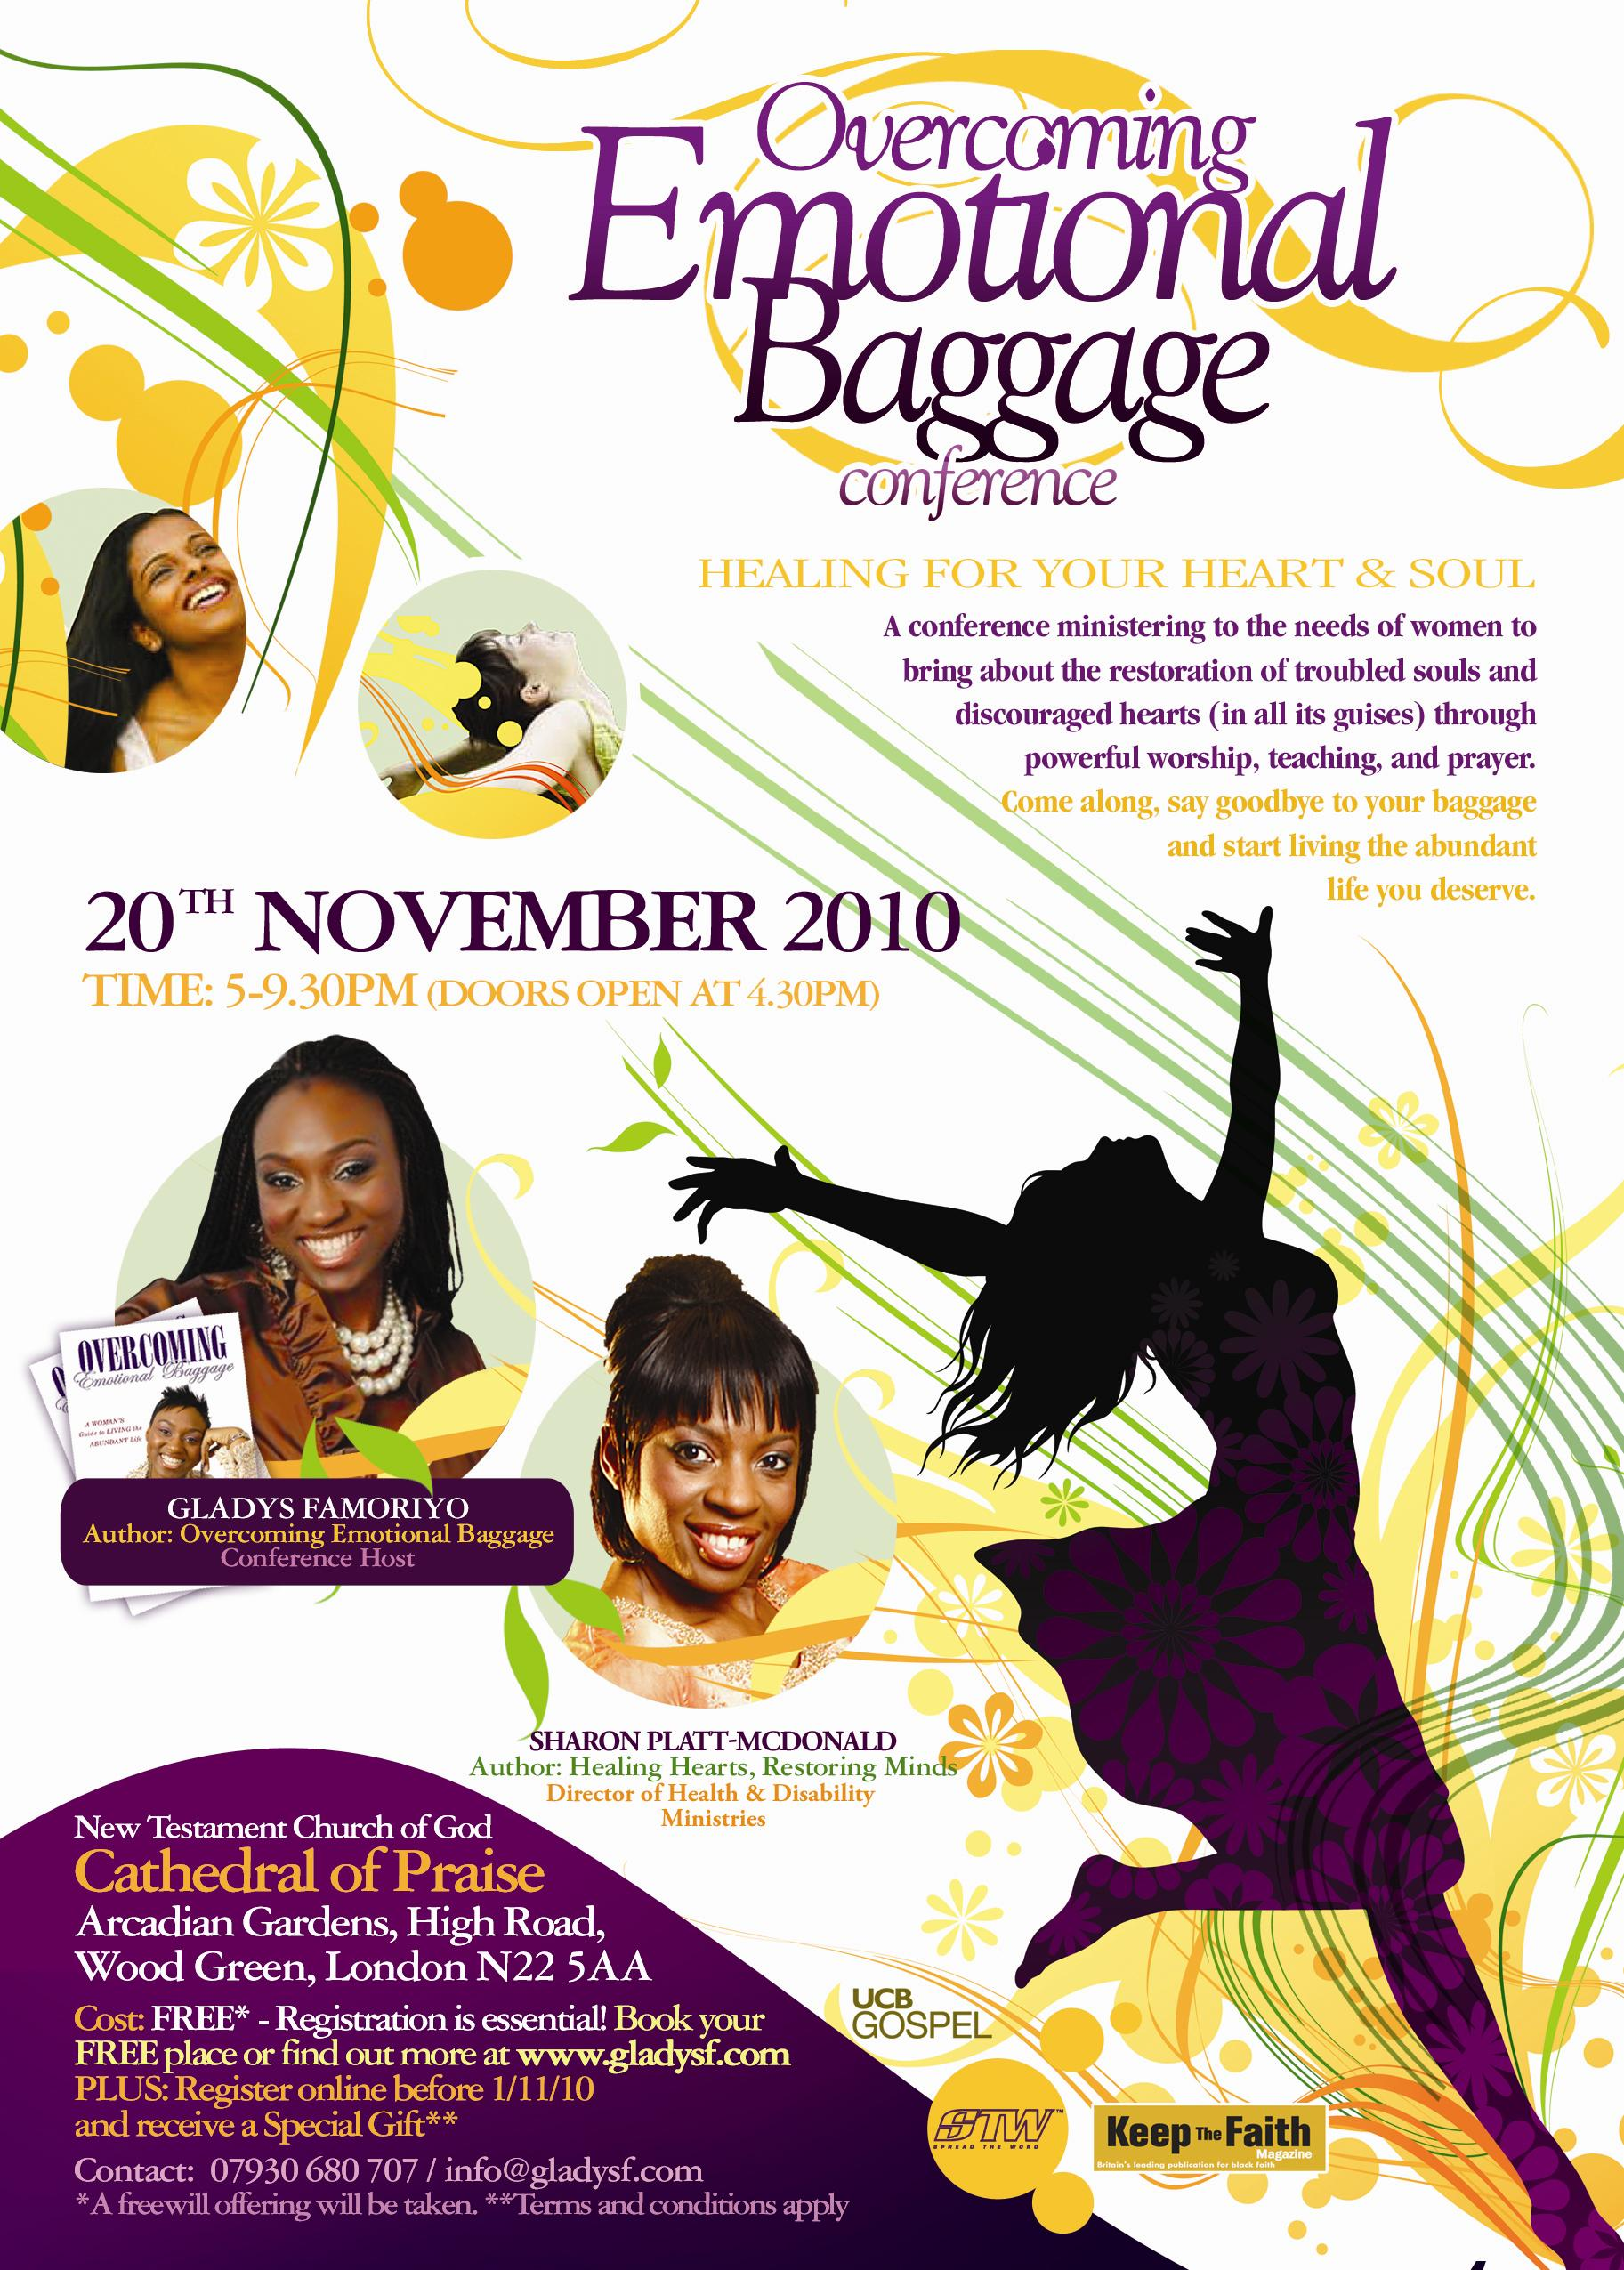 Overcoming Emotional Baggage Conference